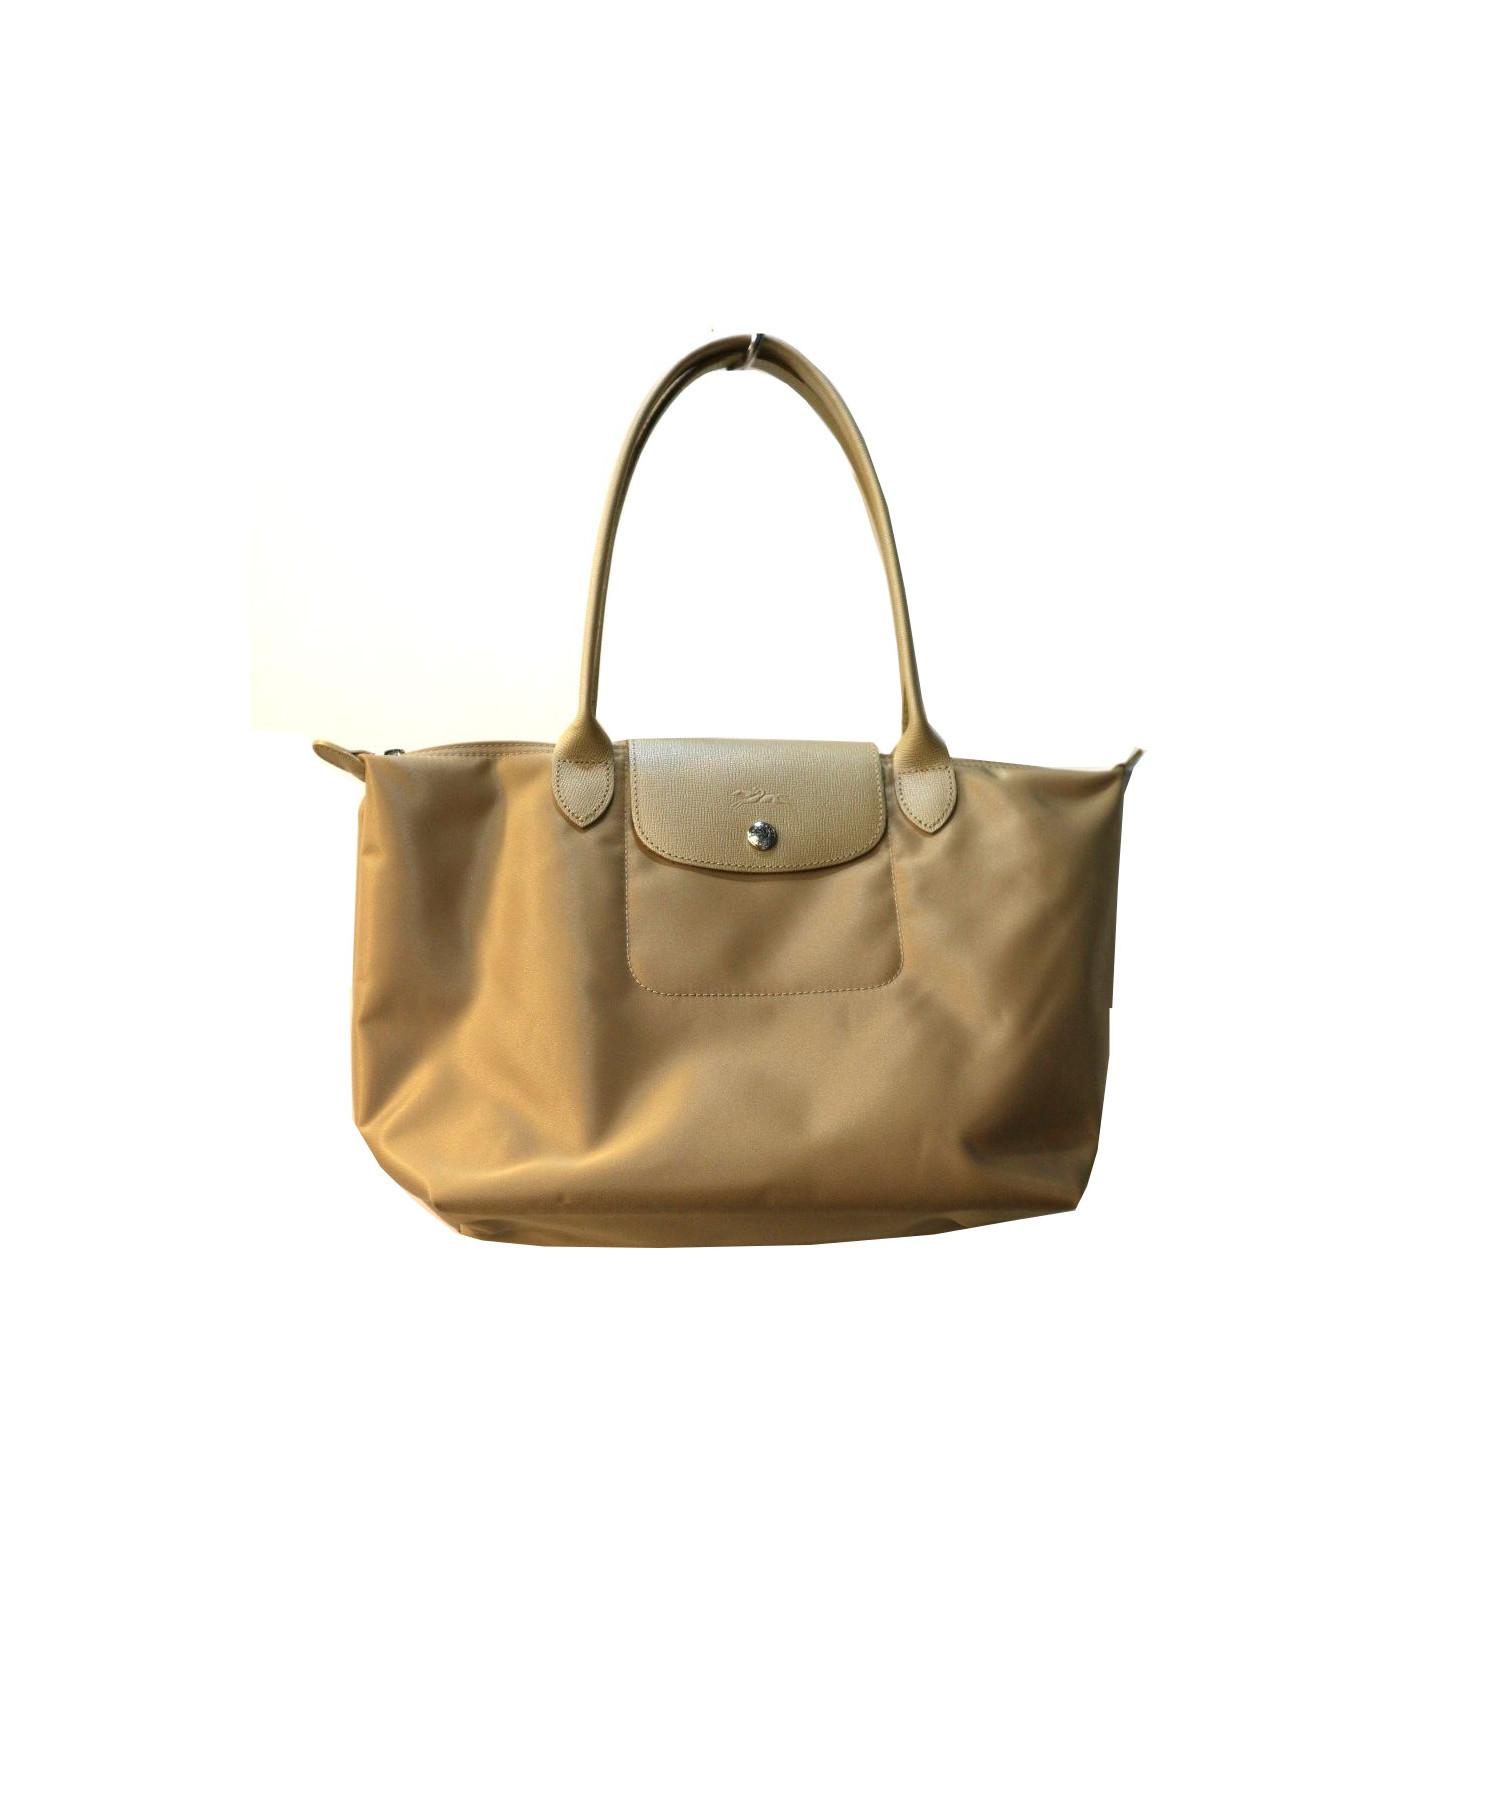 80316b62dd4a 中古・古着通販】LONGCHAMP (ロンシャン) Le Pliage Neo Tote bag S ...